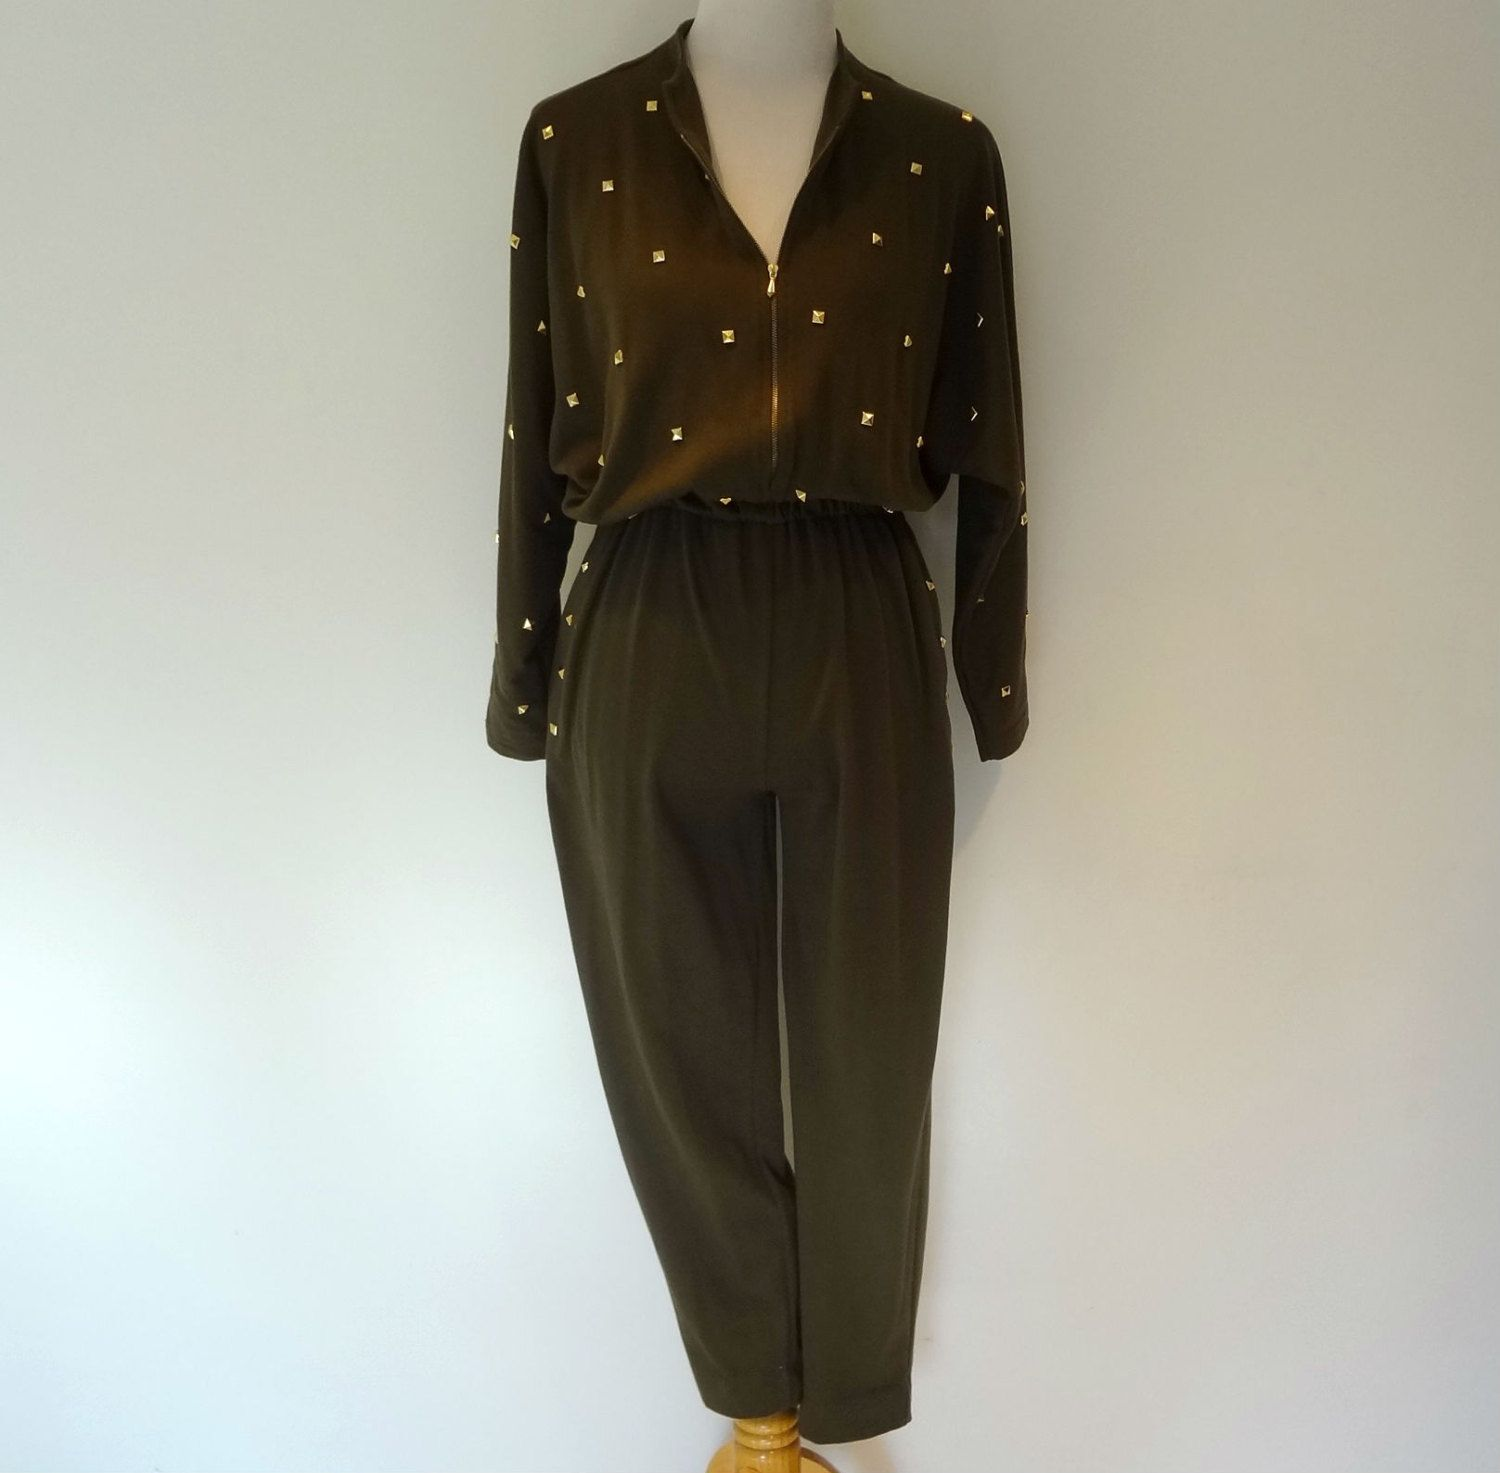 Vintage 1970s 1980s Olive Green Jumpsuit w/ Gold Studs Urban Retro Funky Disco S. $24.99, via Etsy.